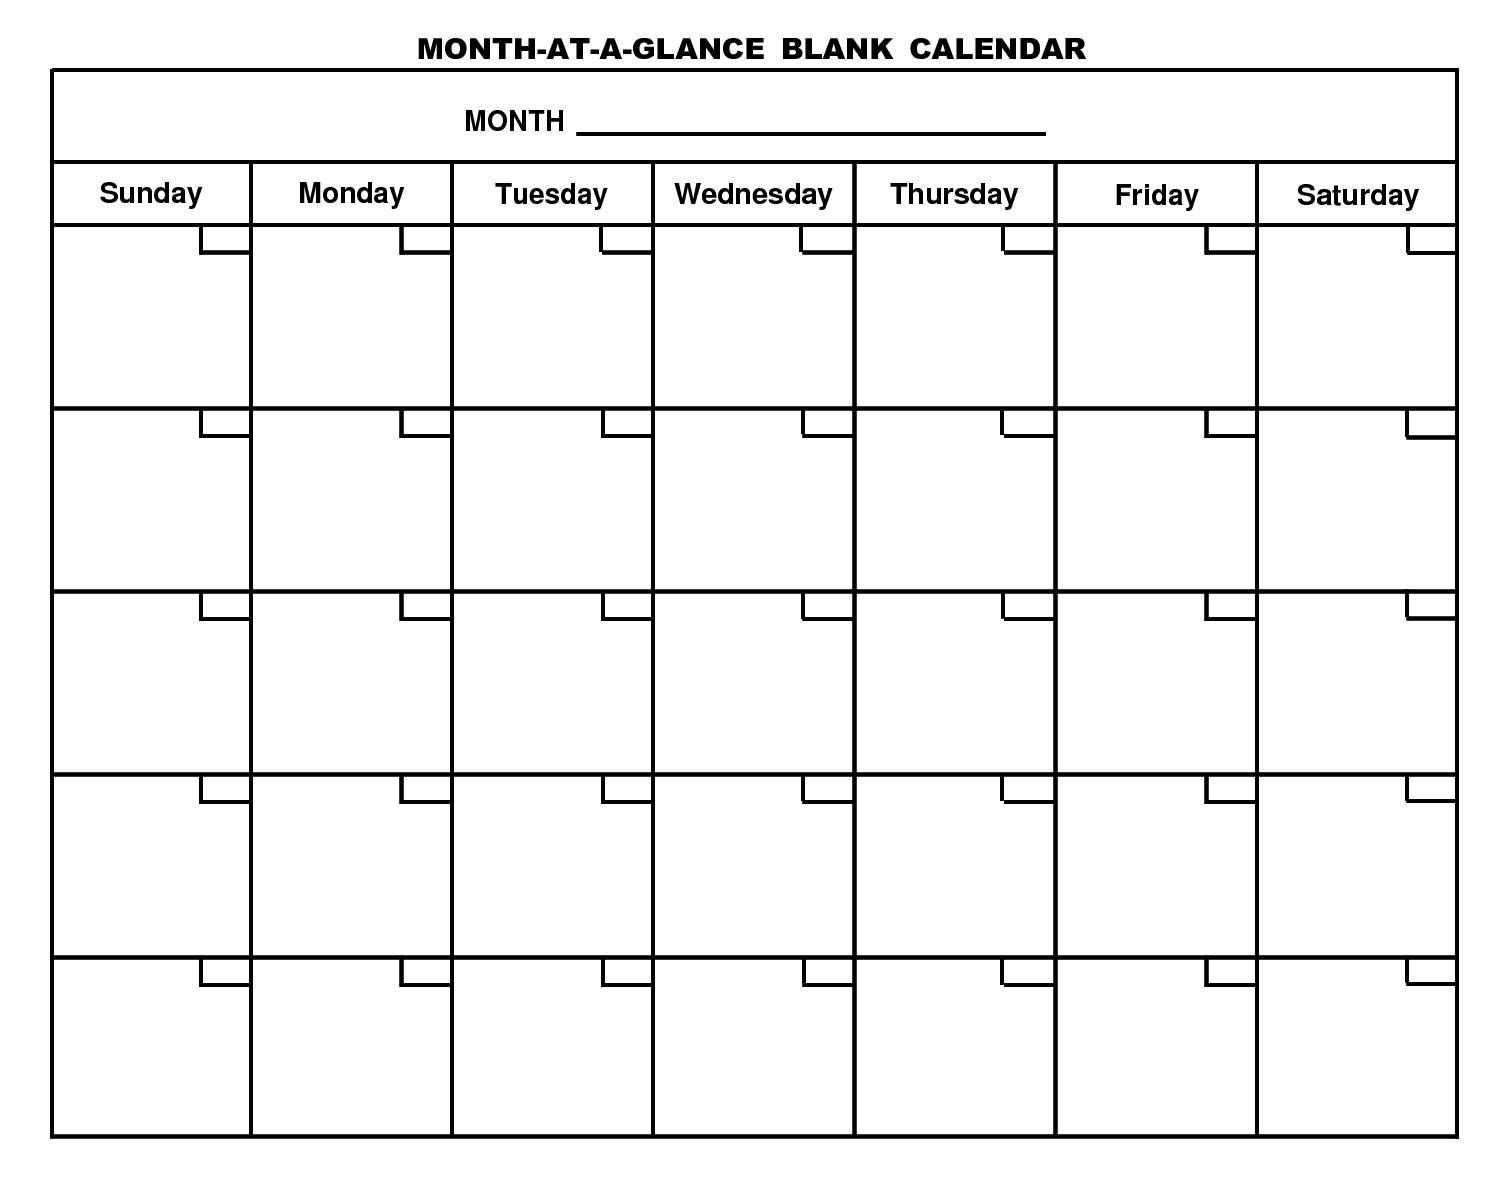 Free Printable Monthly Calendar With Large Boxes Skymaps intended for Month At A Glance Blank Calendar Template